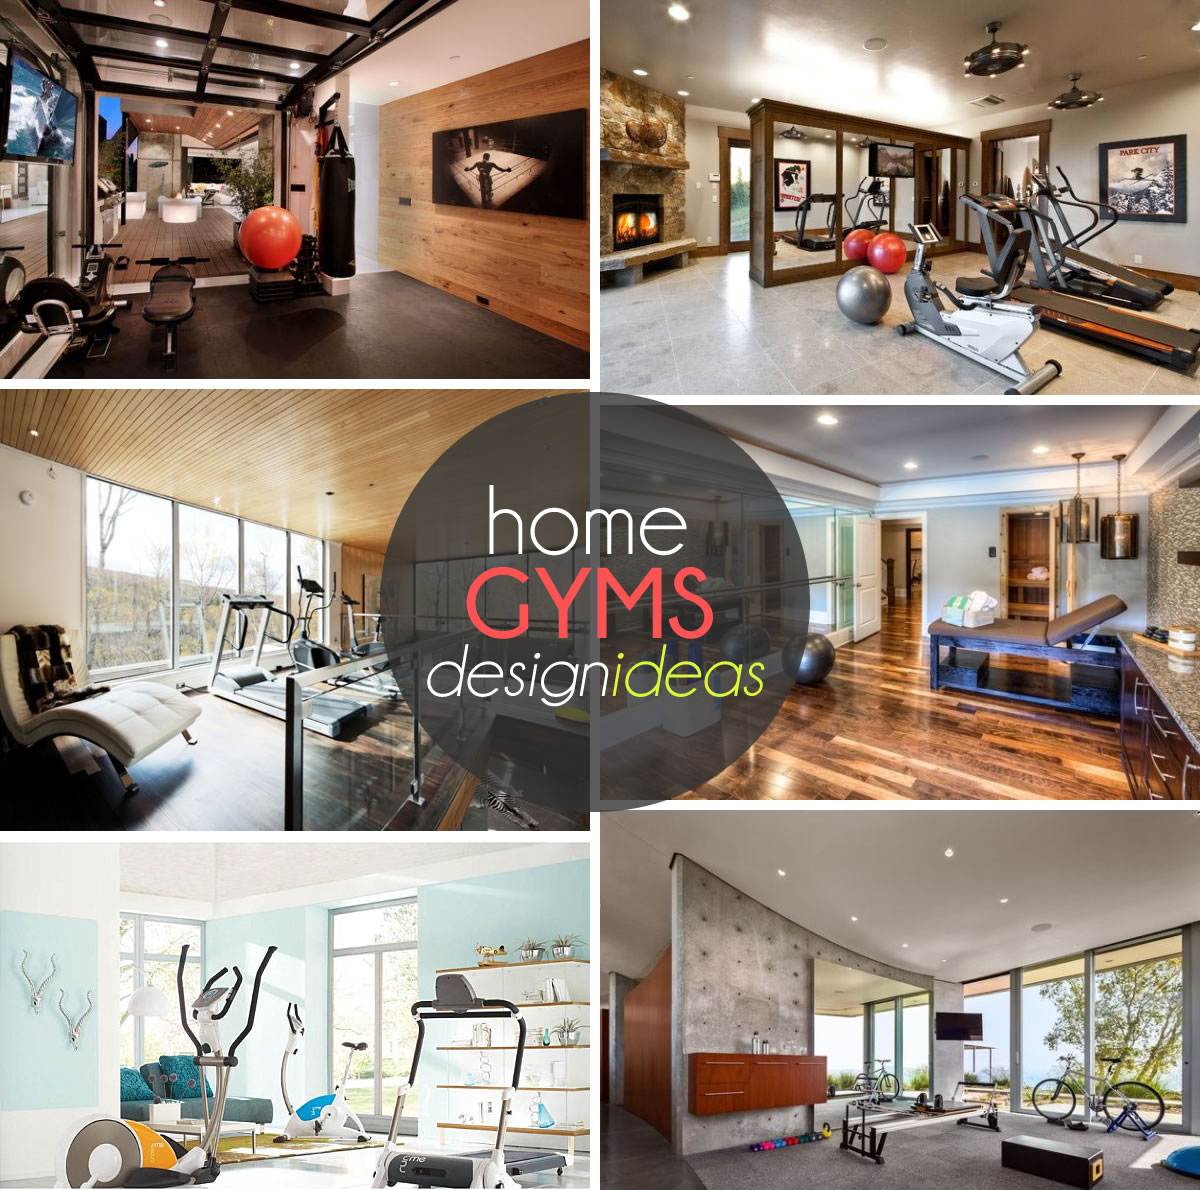 exquisite home gym design ideas - In Home Gym Designs